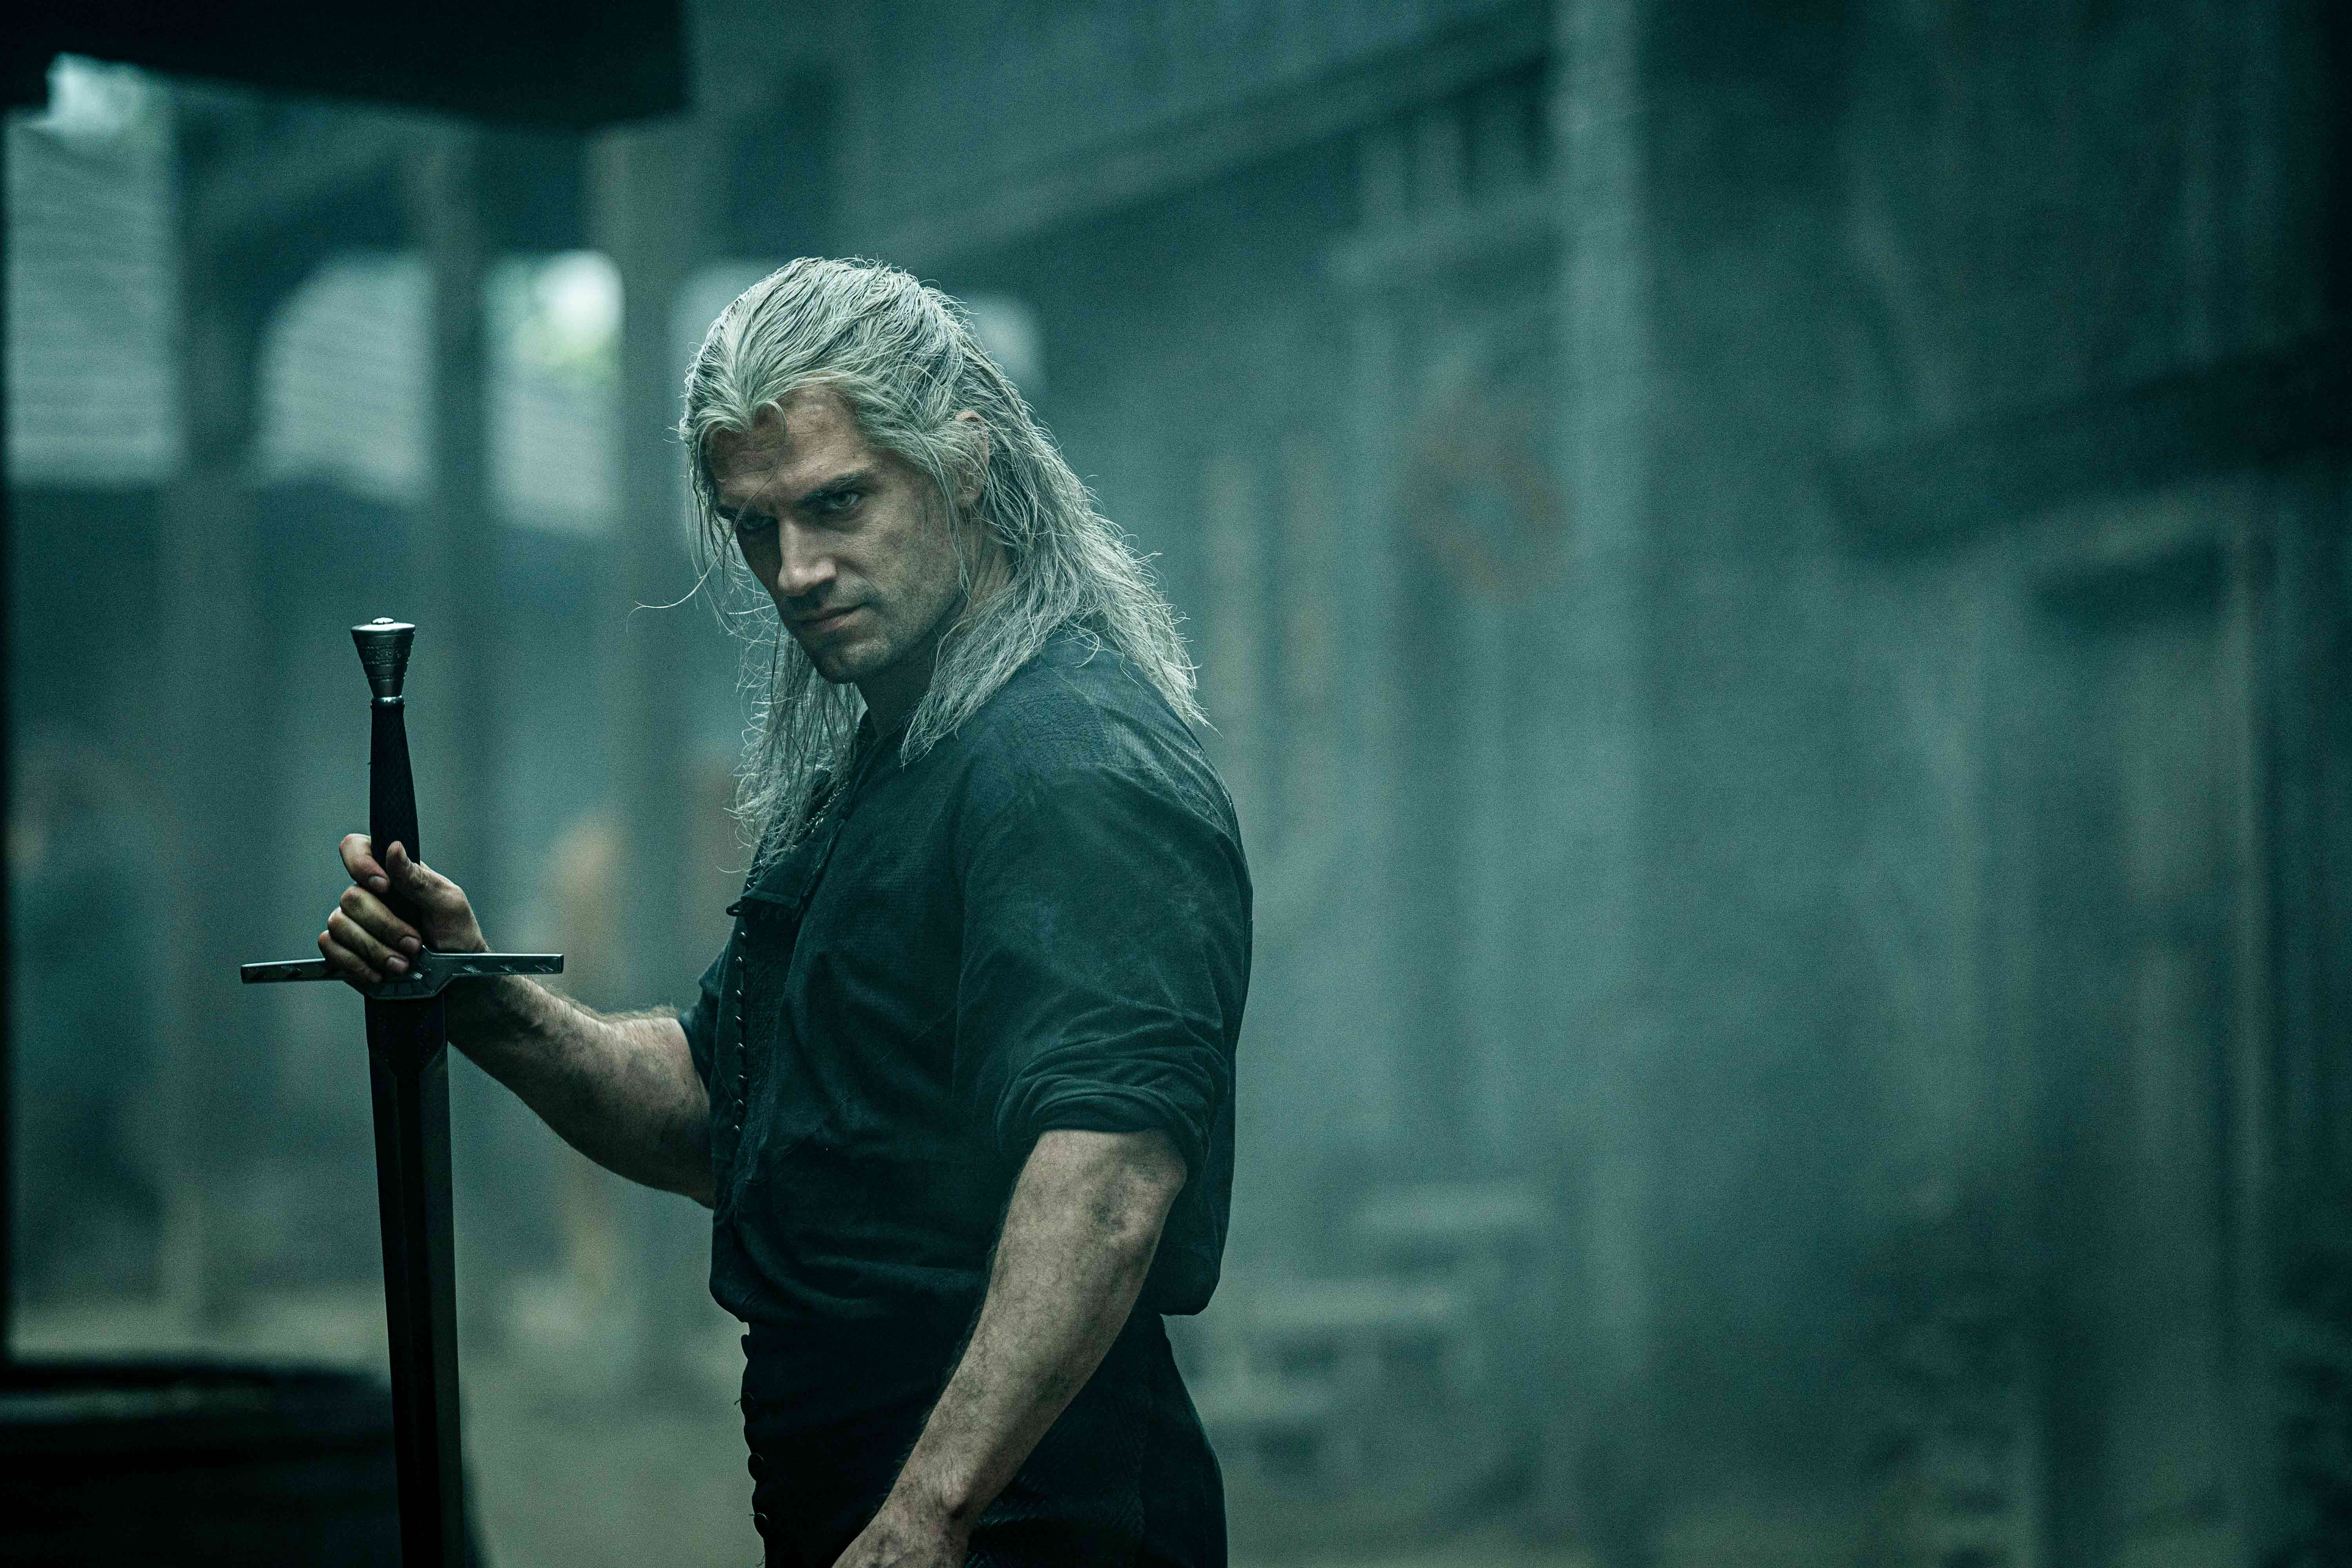 Netflix The Witcher: Geralt preparing for a fight.